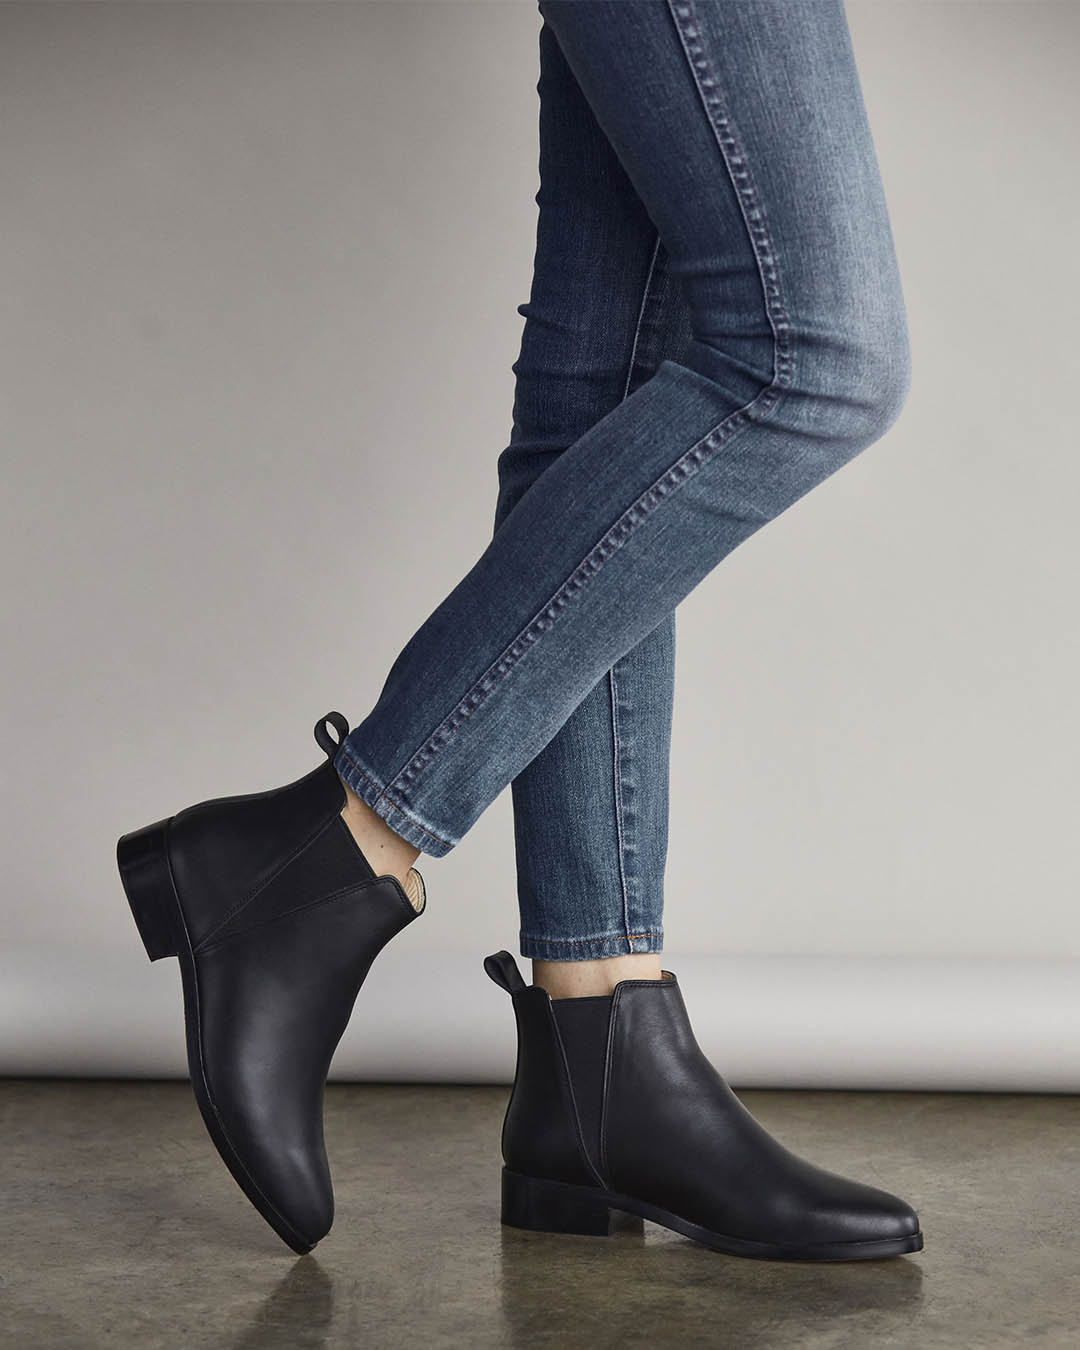 Women's All Black Chelsea Boot | Ethically Made | Nisolo